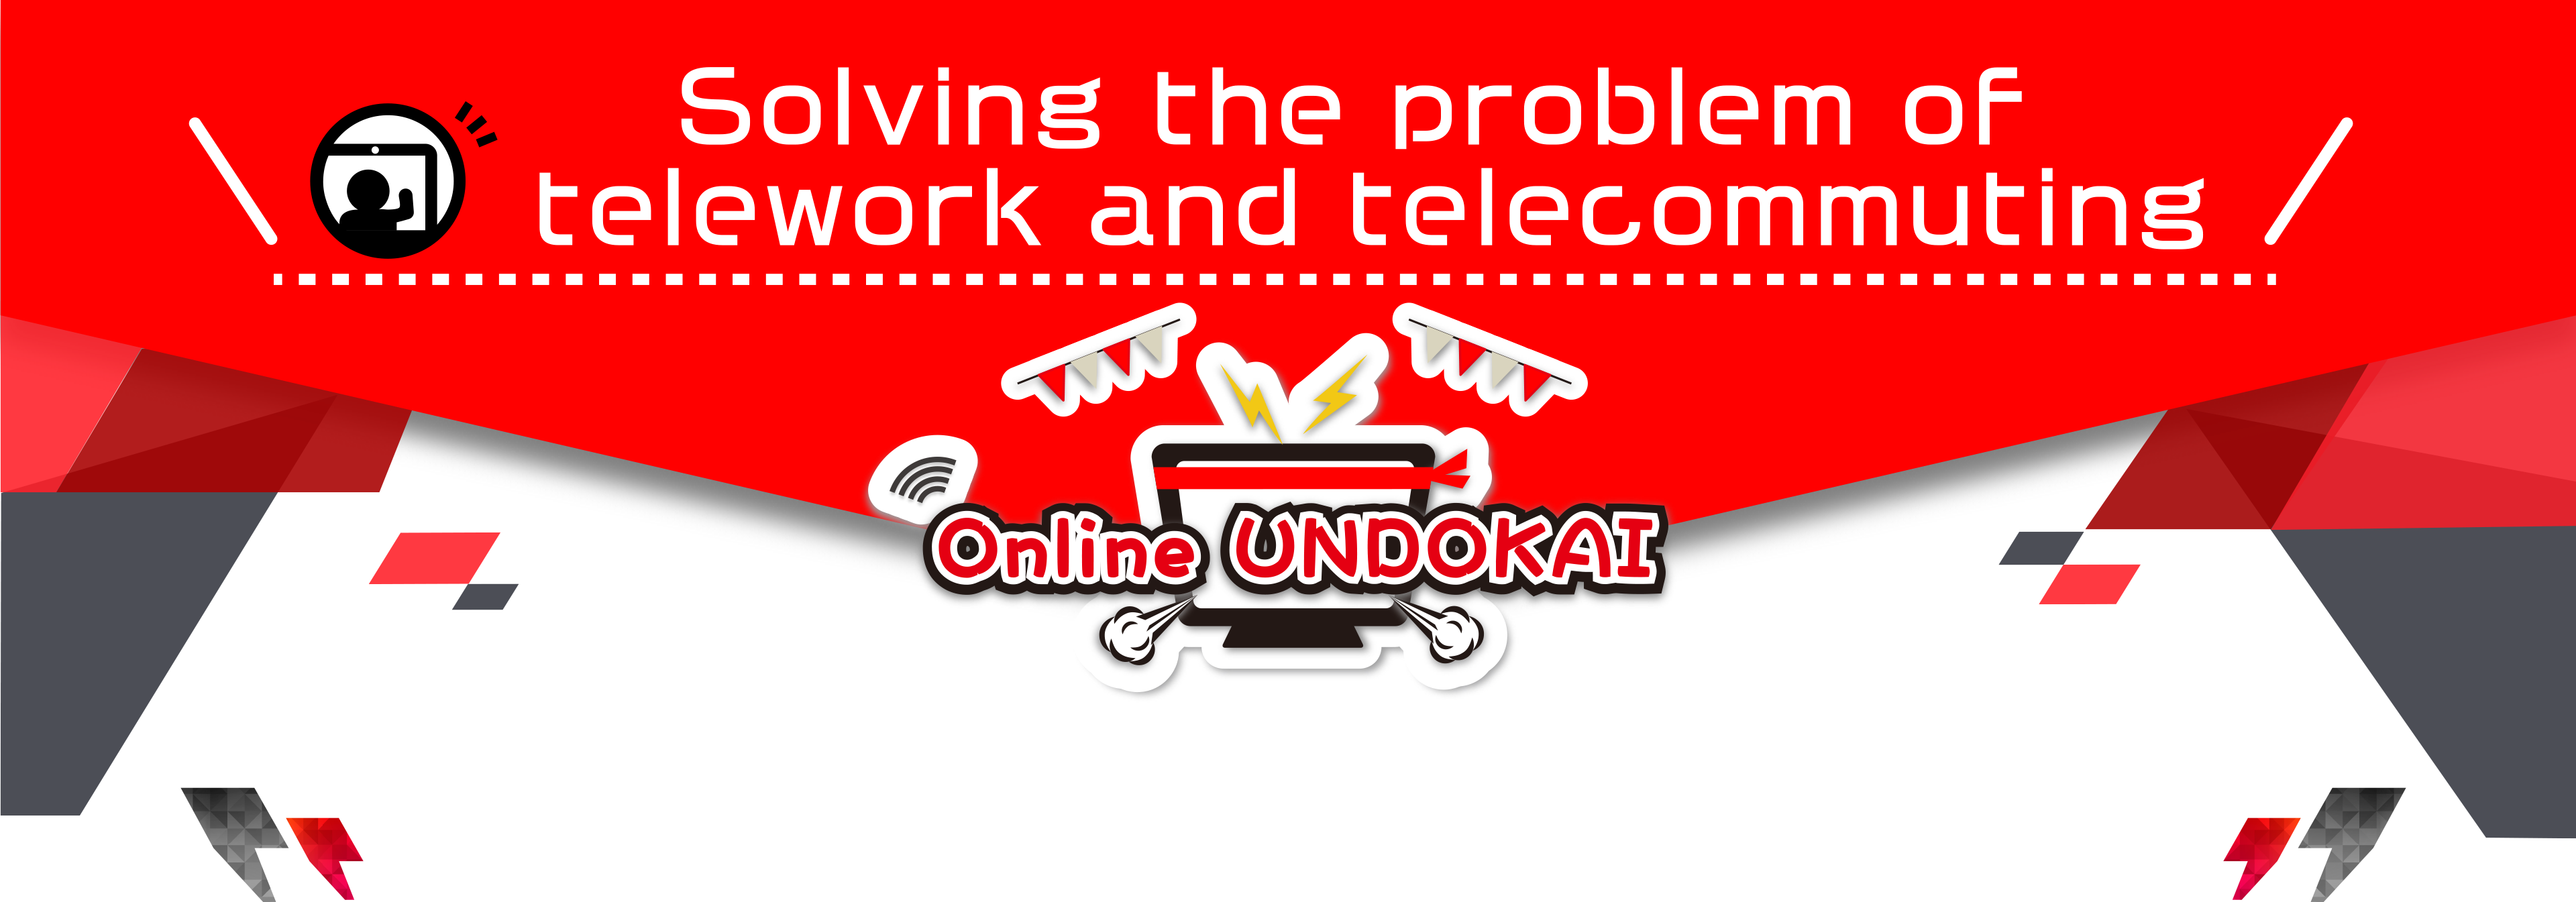 Solving the problem of telework and telecommuting